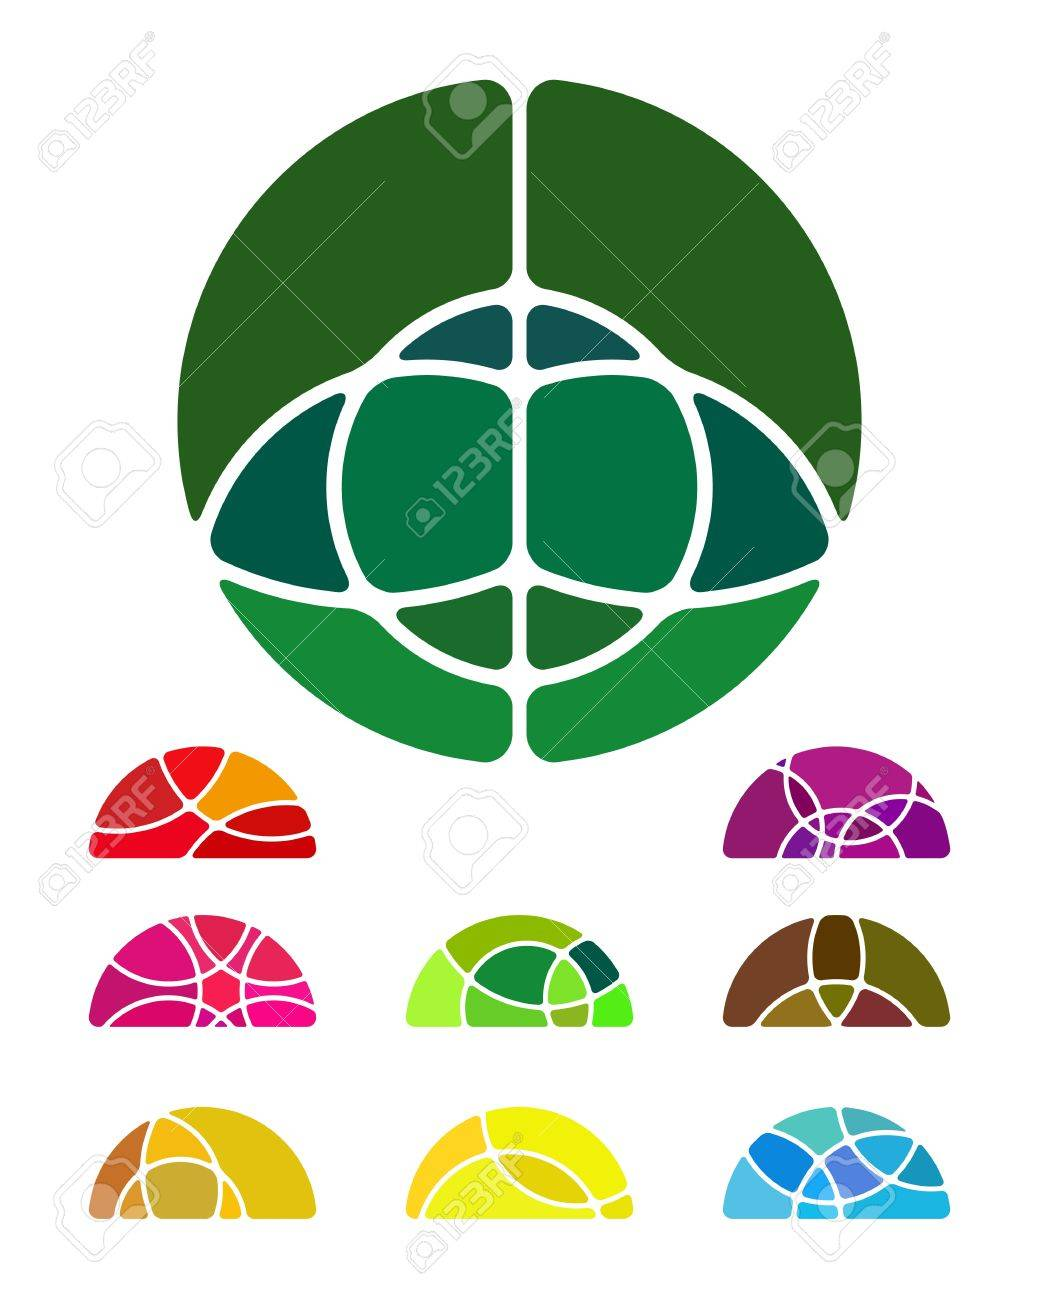 Design abstract round logo element  Crushing semicircular pattern  Colorful semicircular icons set Stock Vector - 18681961